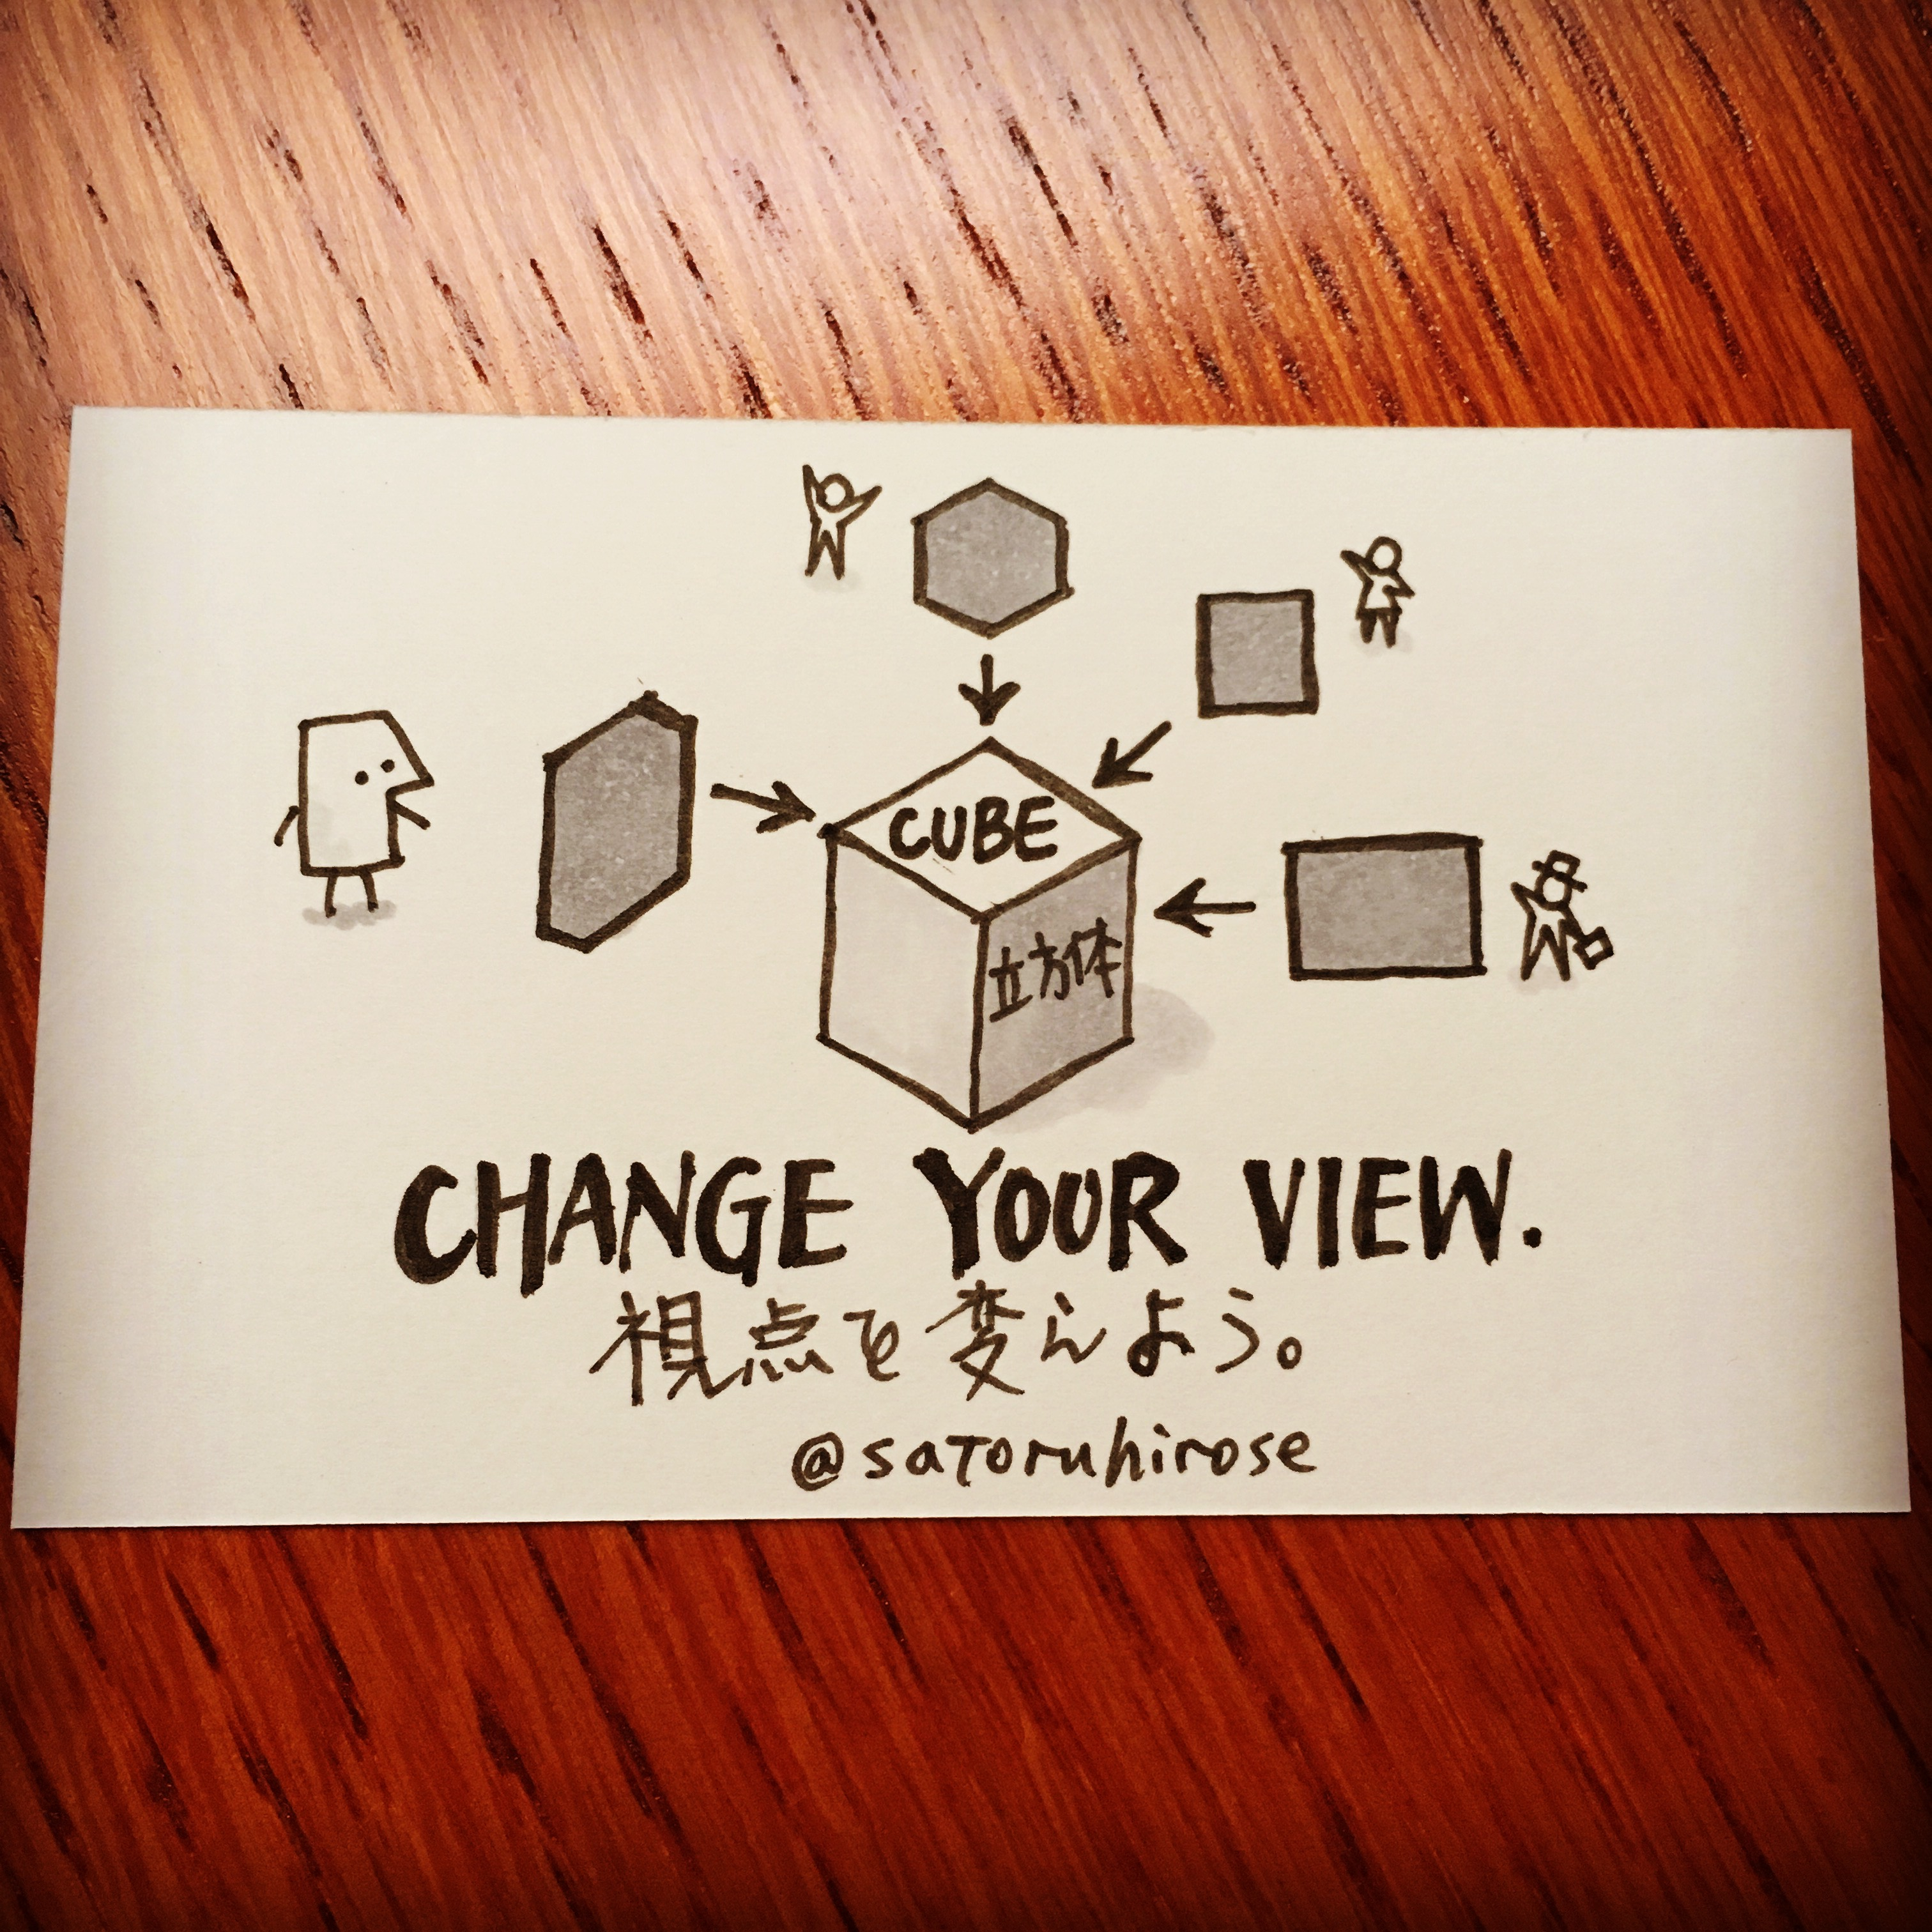 Change your view.